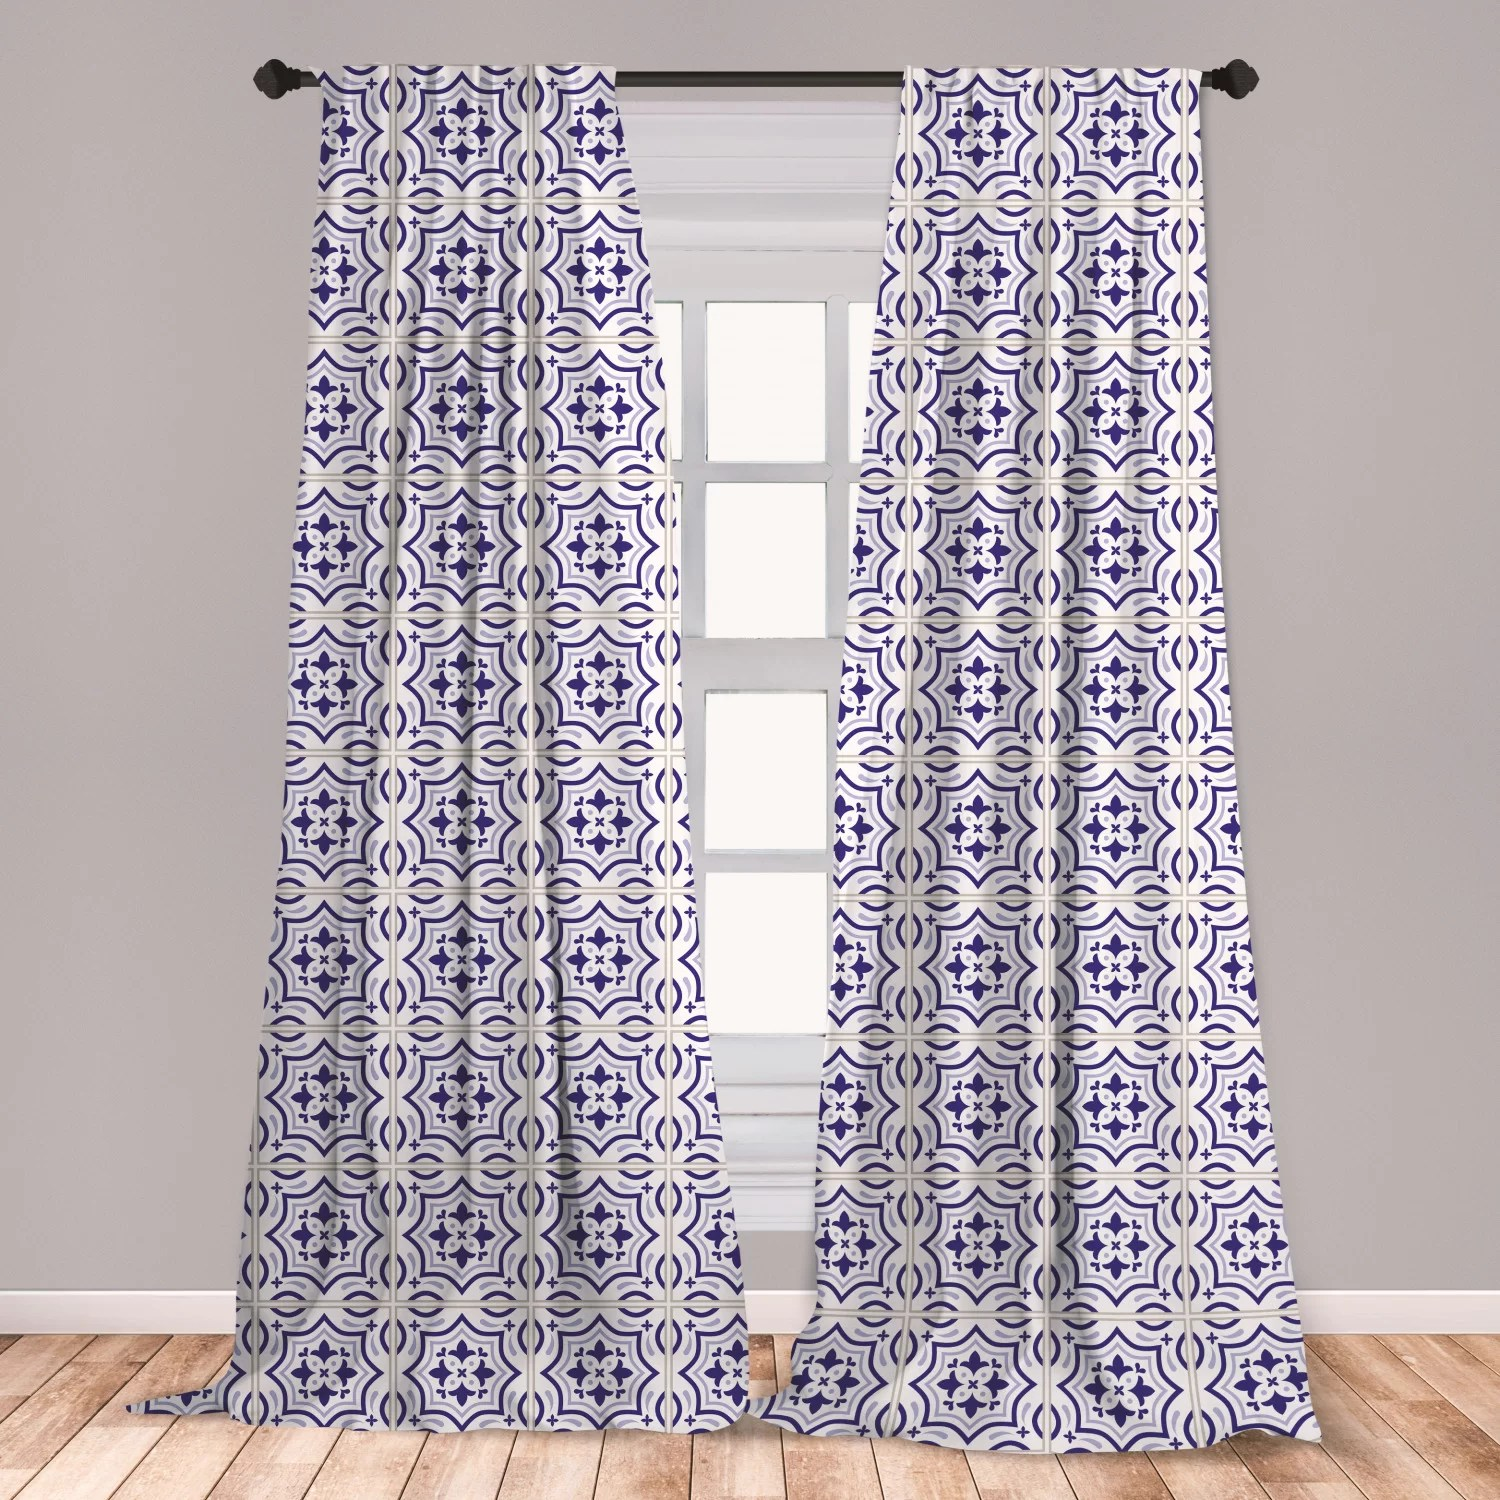 ambesonne navy blue curtains portuguese tile design traditional azulejo retro style mosaic window treatments 2 panel set for living room bedroom